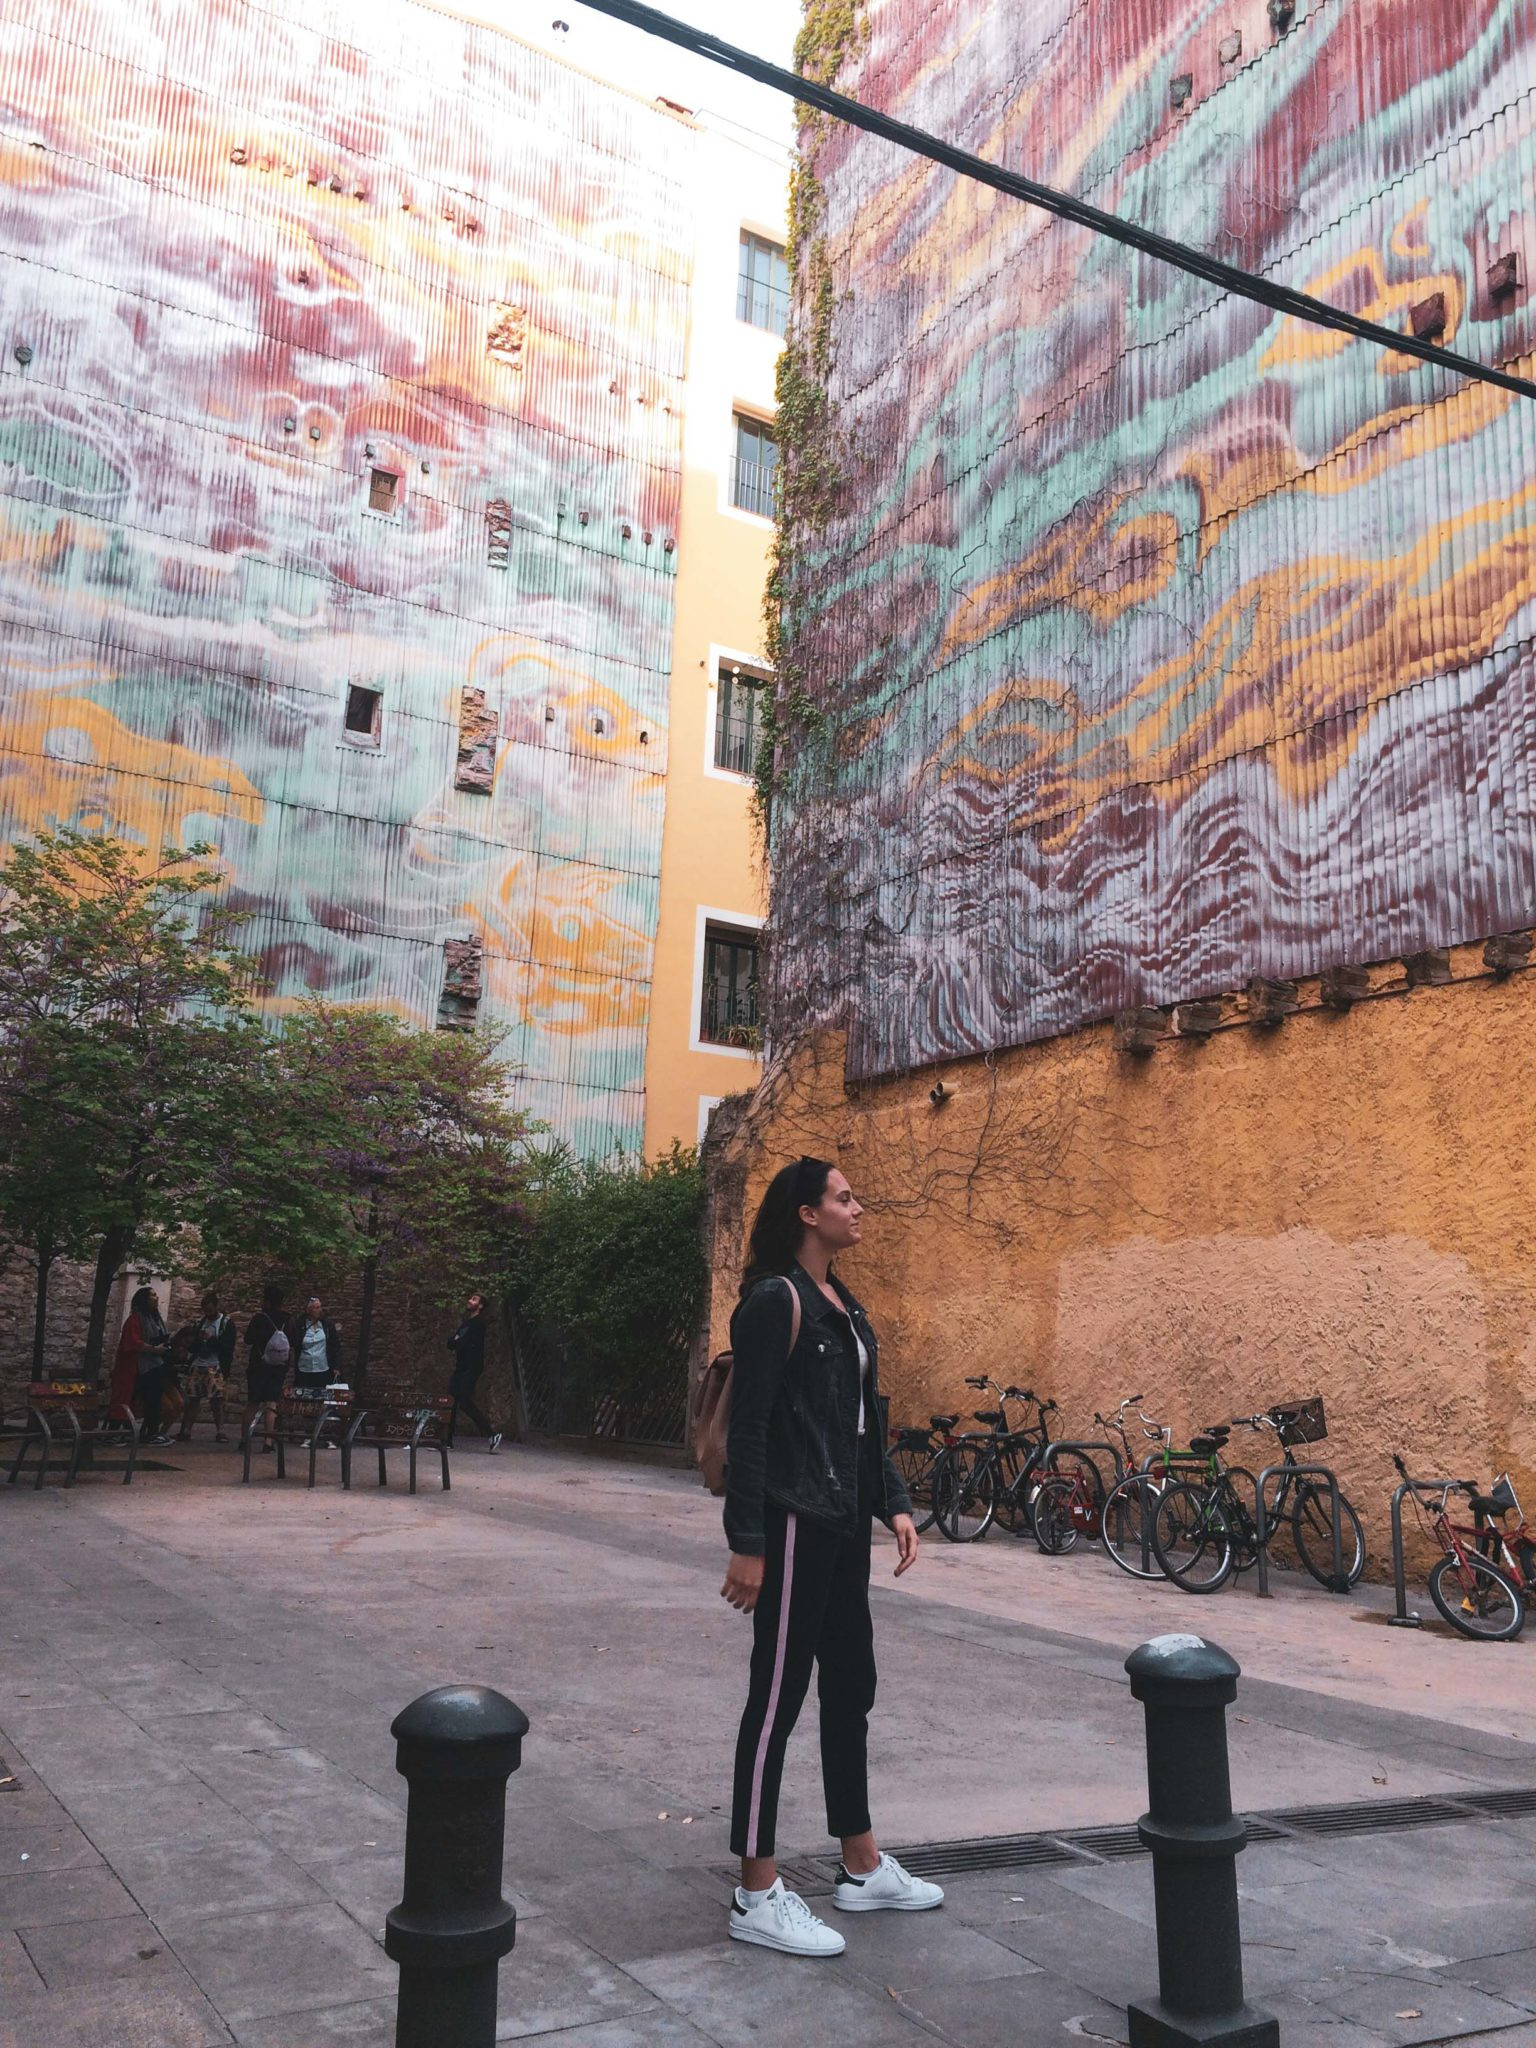 Barcelona travel guide by Michaella and Lina from Bulgarian lifestyle blog Quite a Looker / La Ribera